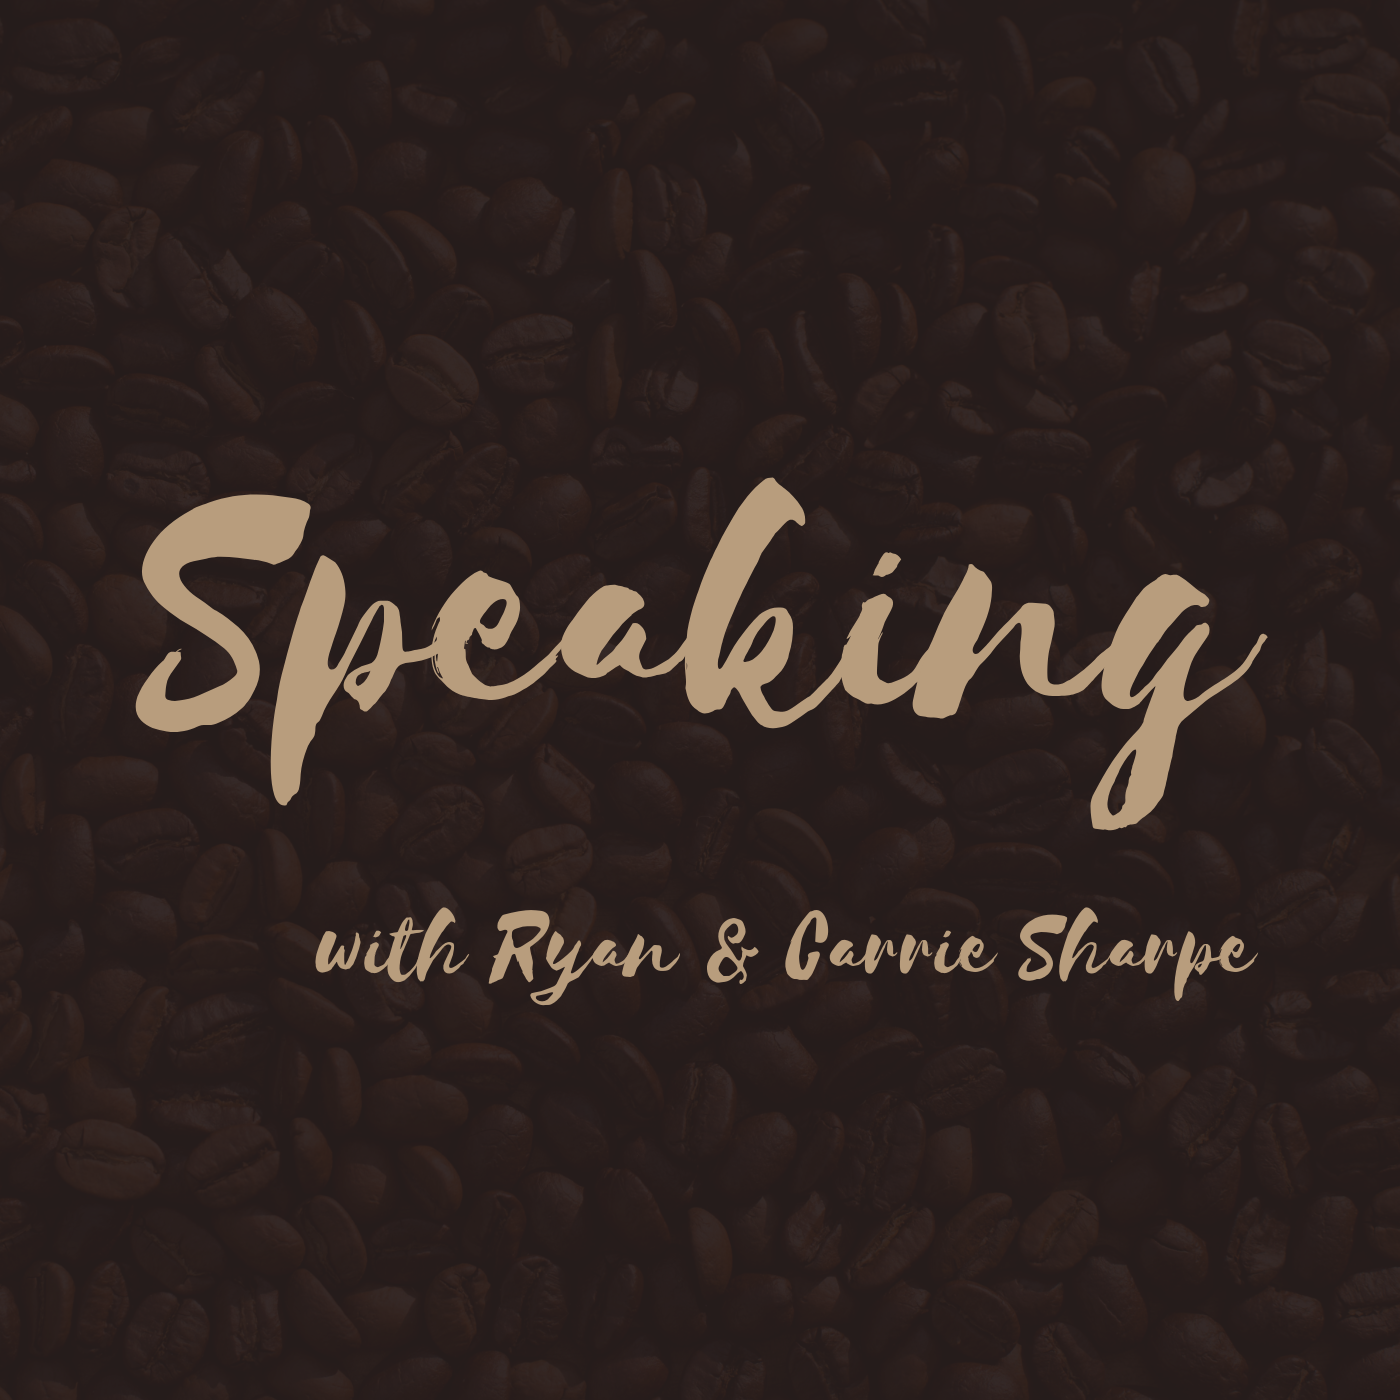 Speaking with Ryan & Carrie Sharpe show art